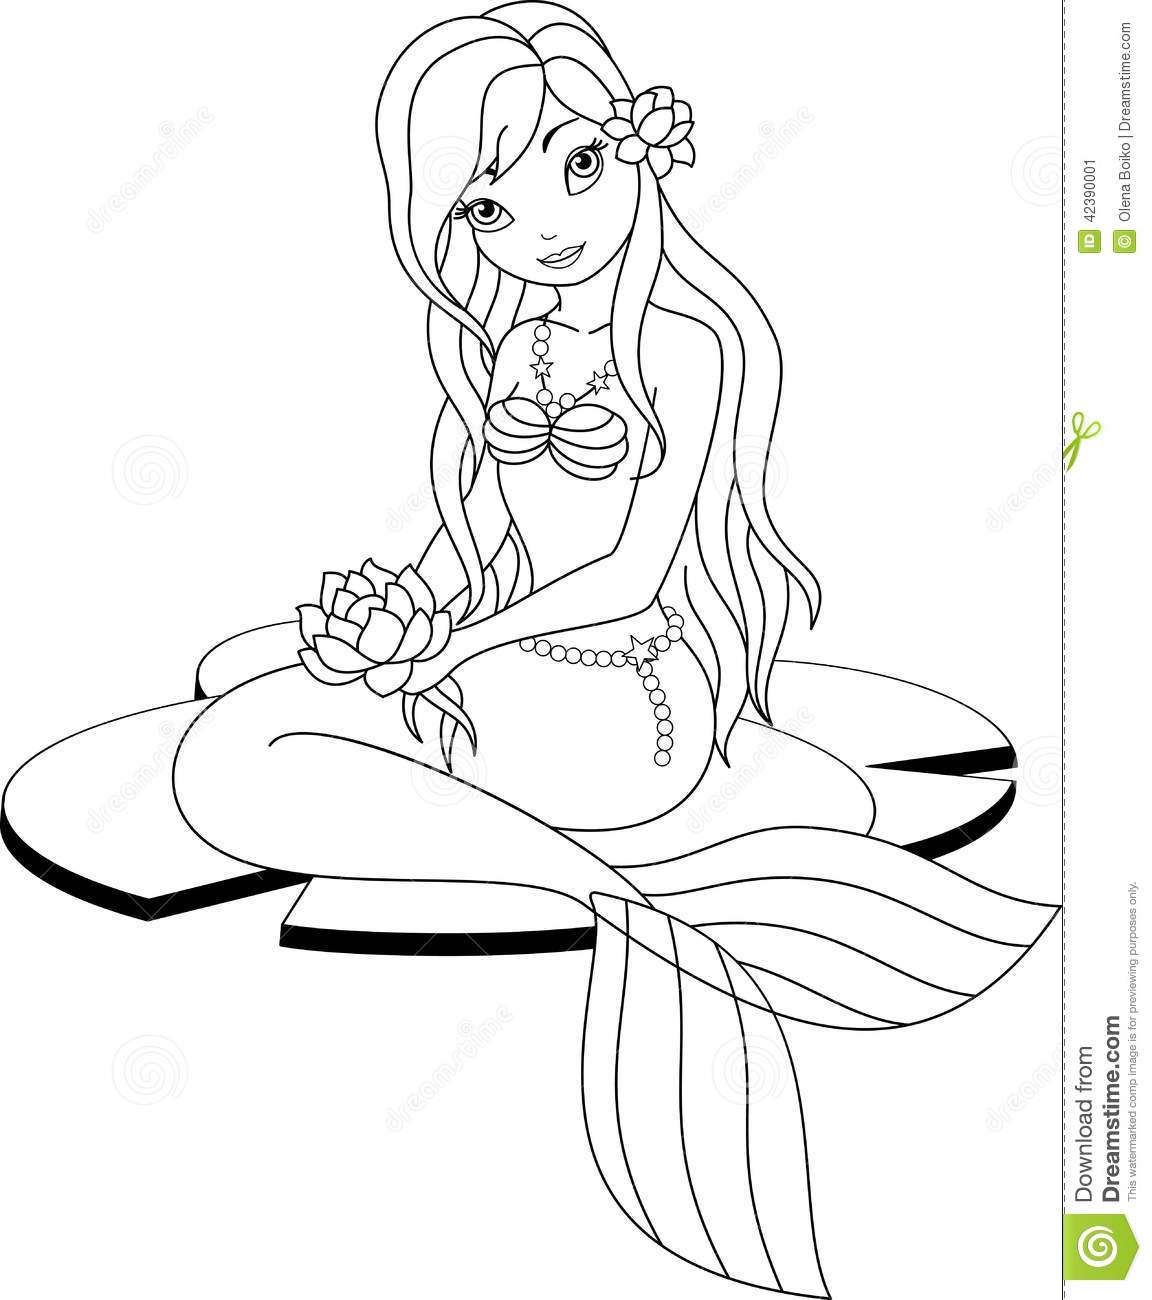 1152x1300 Unique Cute Mermaid Coloring Pages 49 With Additional For Page